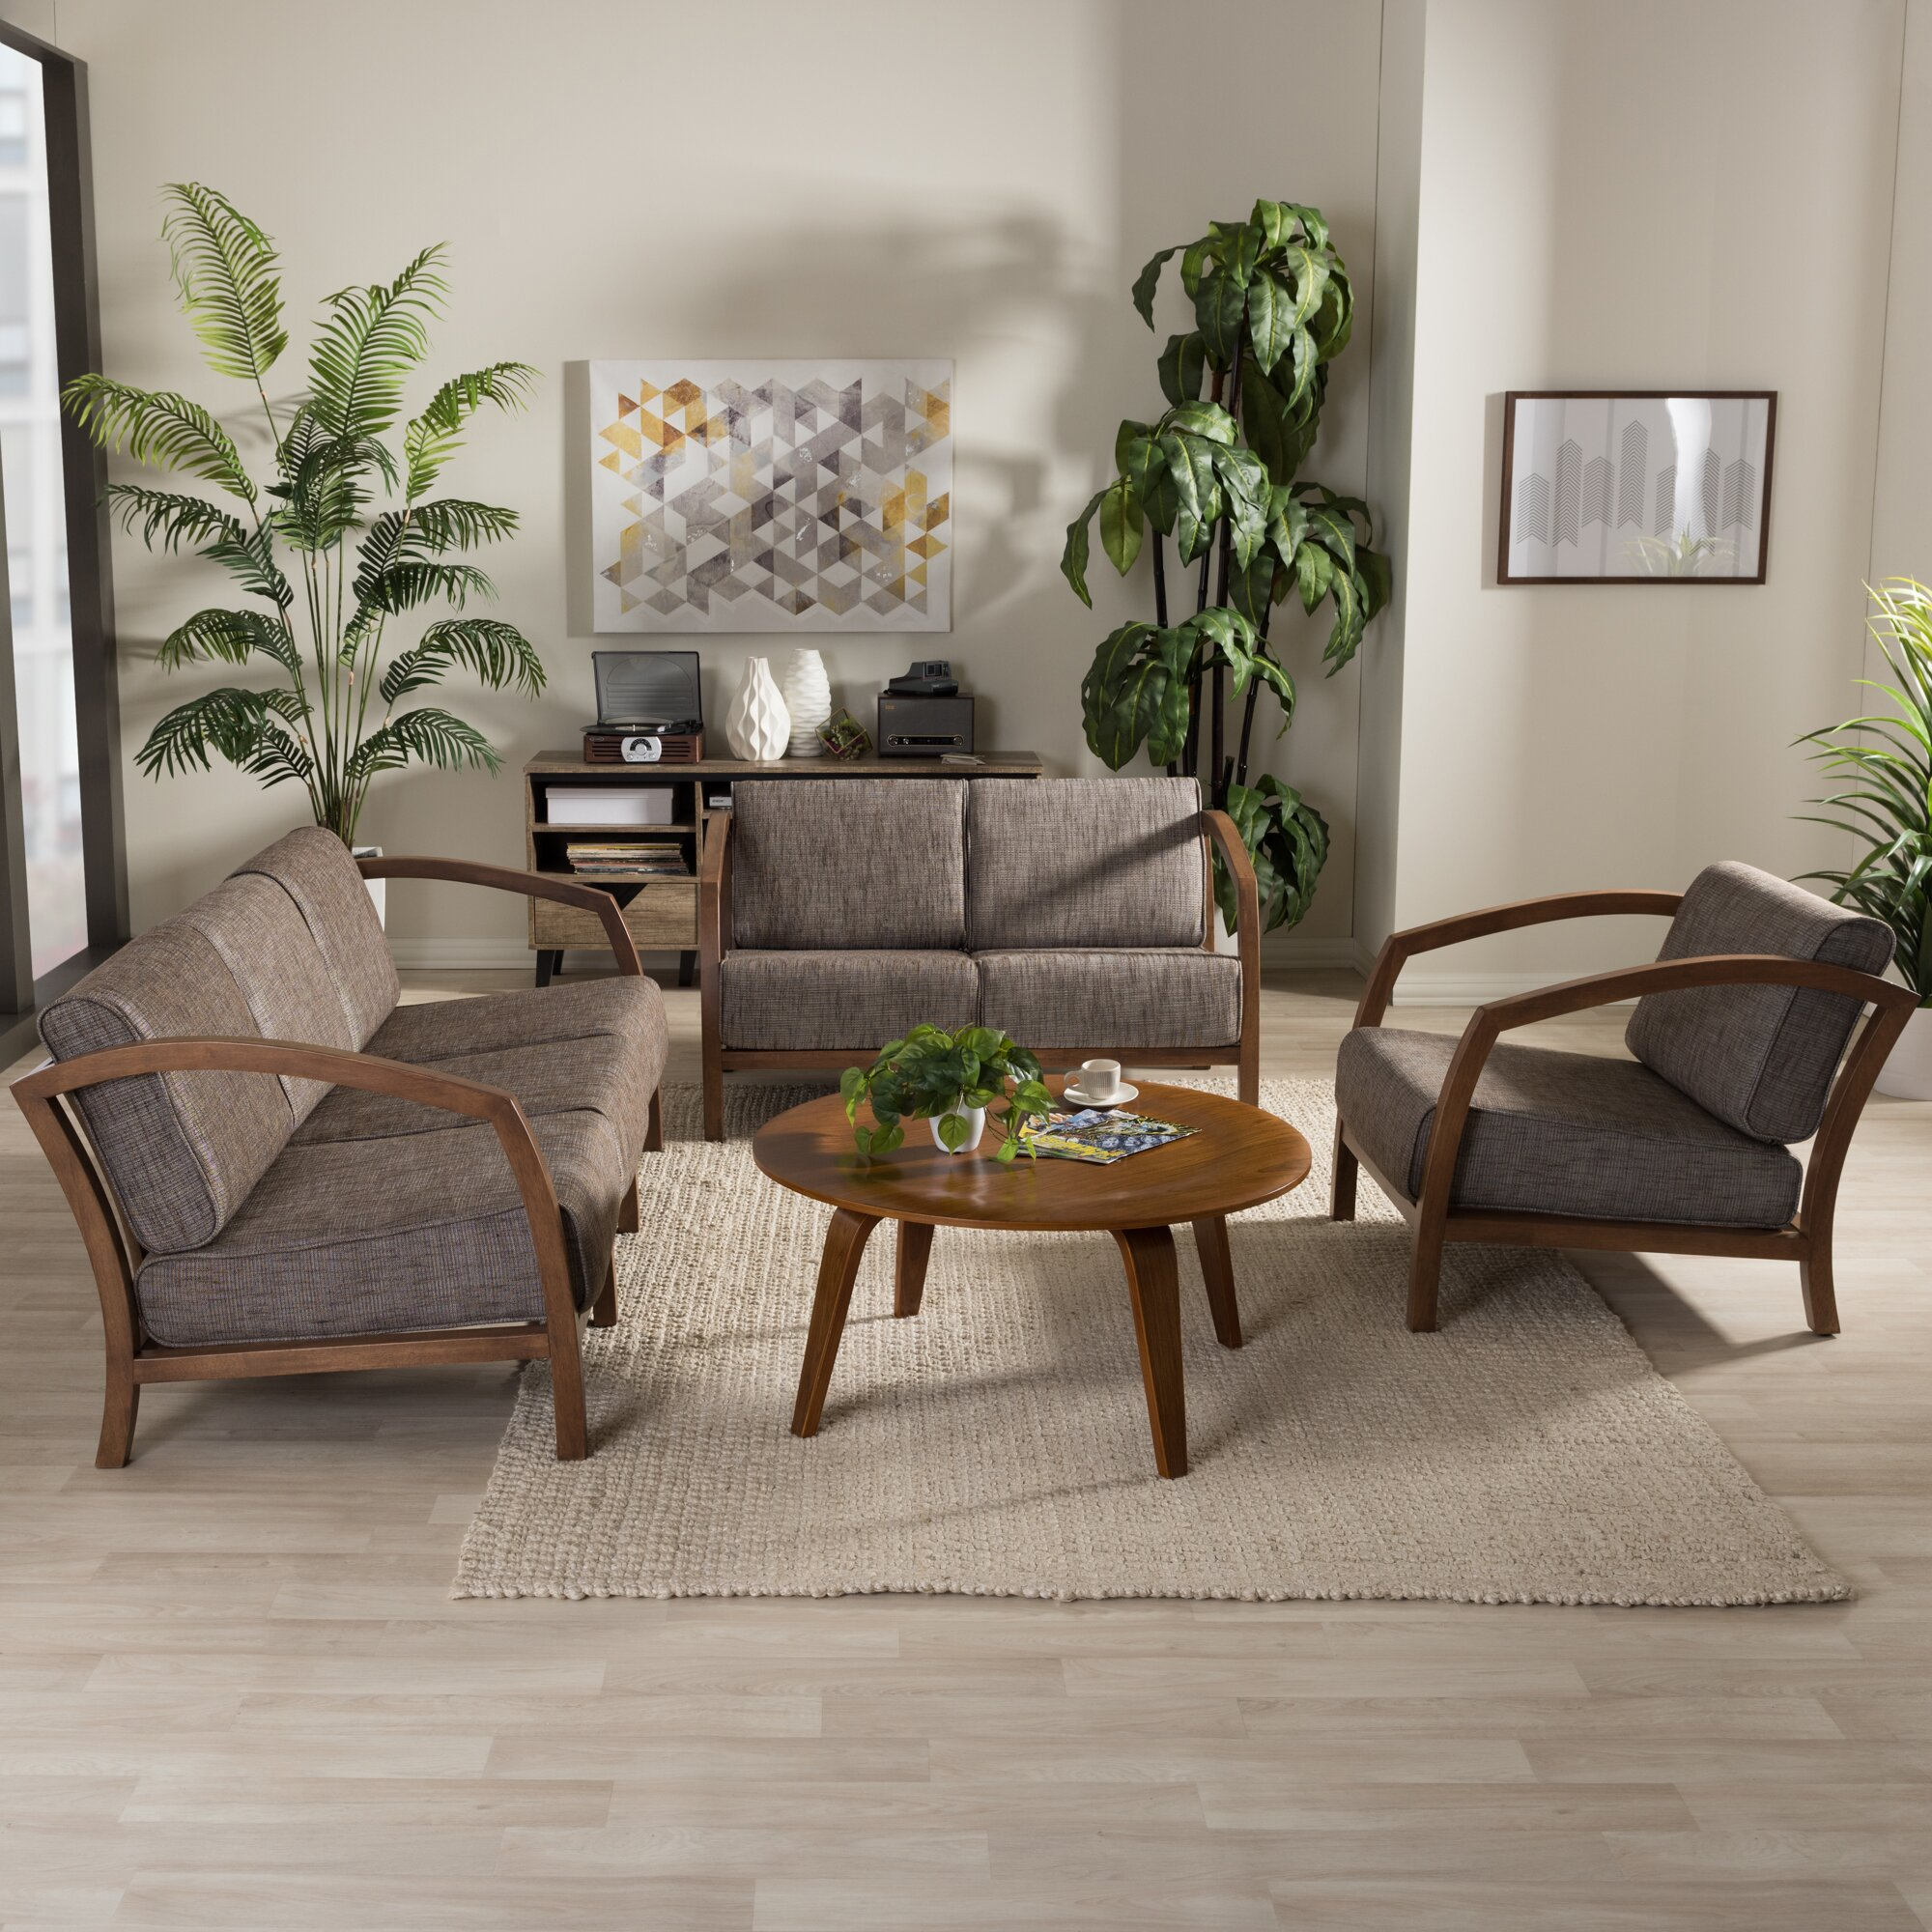 Latitude run aguiar 3 piece living room set wayfair for 3 piece living room set